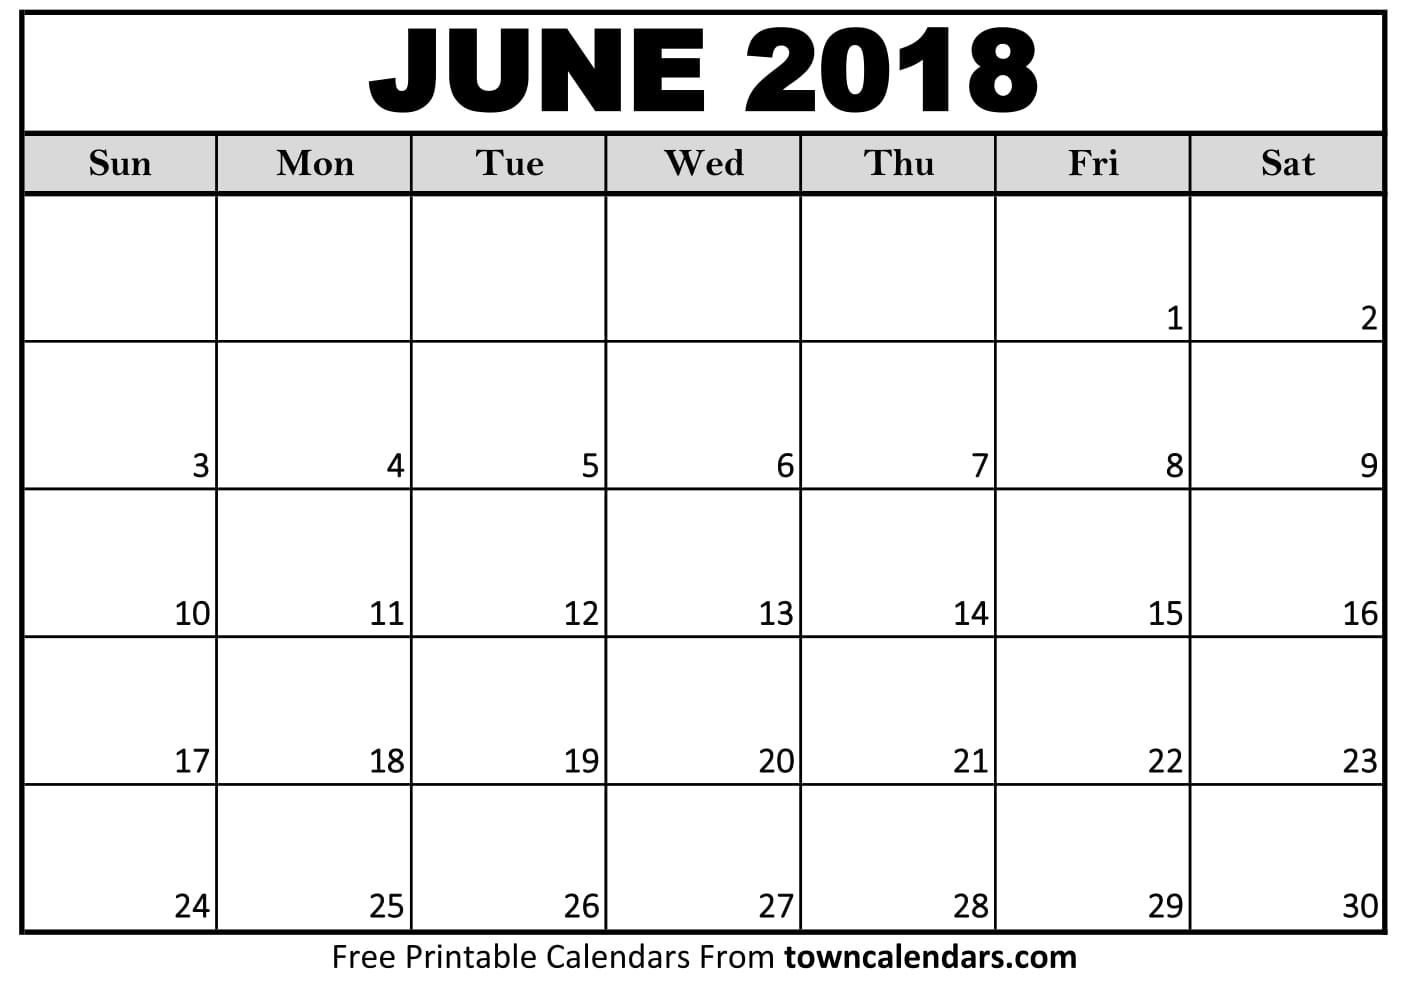 Calendar For June : Free june calendar printable template source